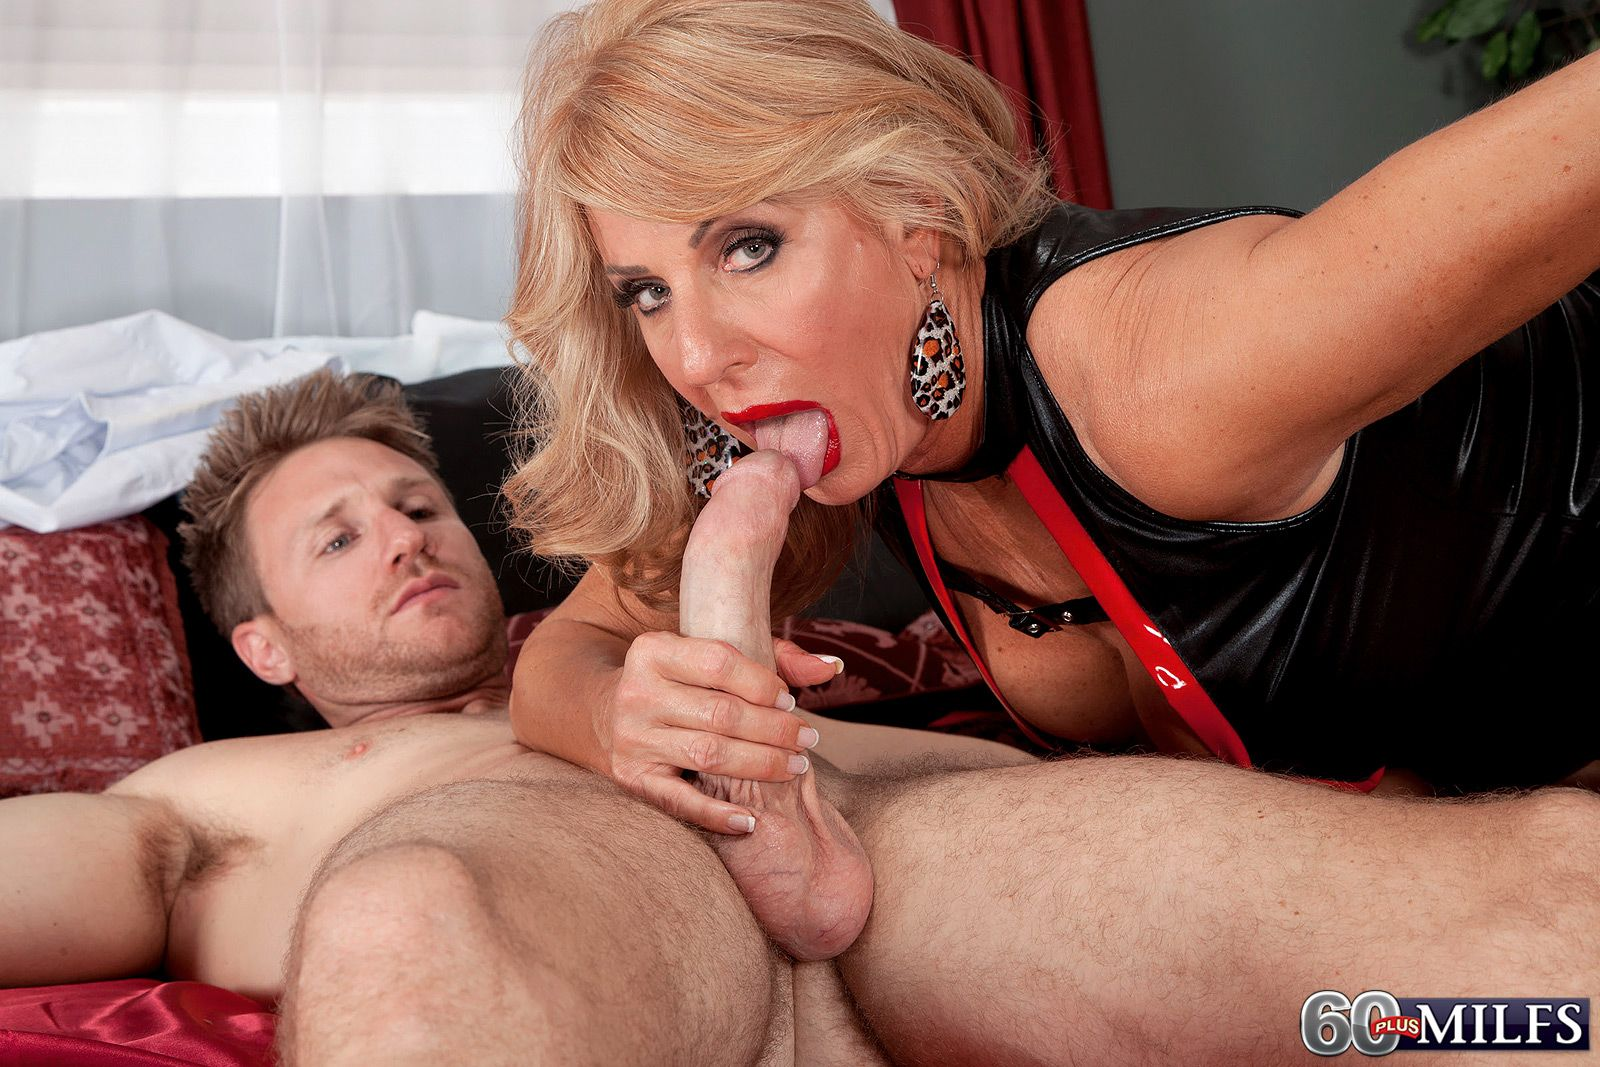 Over 60 MILF pornstar Phoenix Skye jerks off cock in sexy outfit and ...